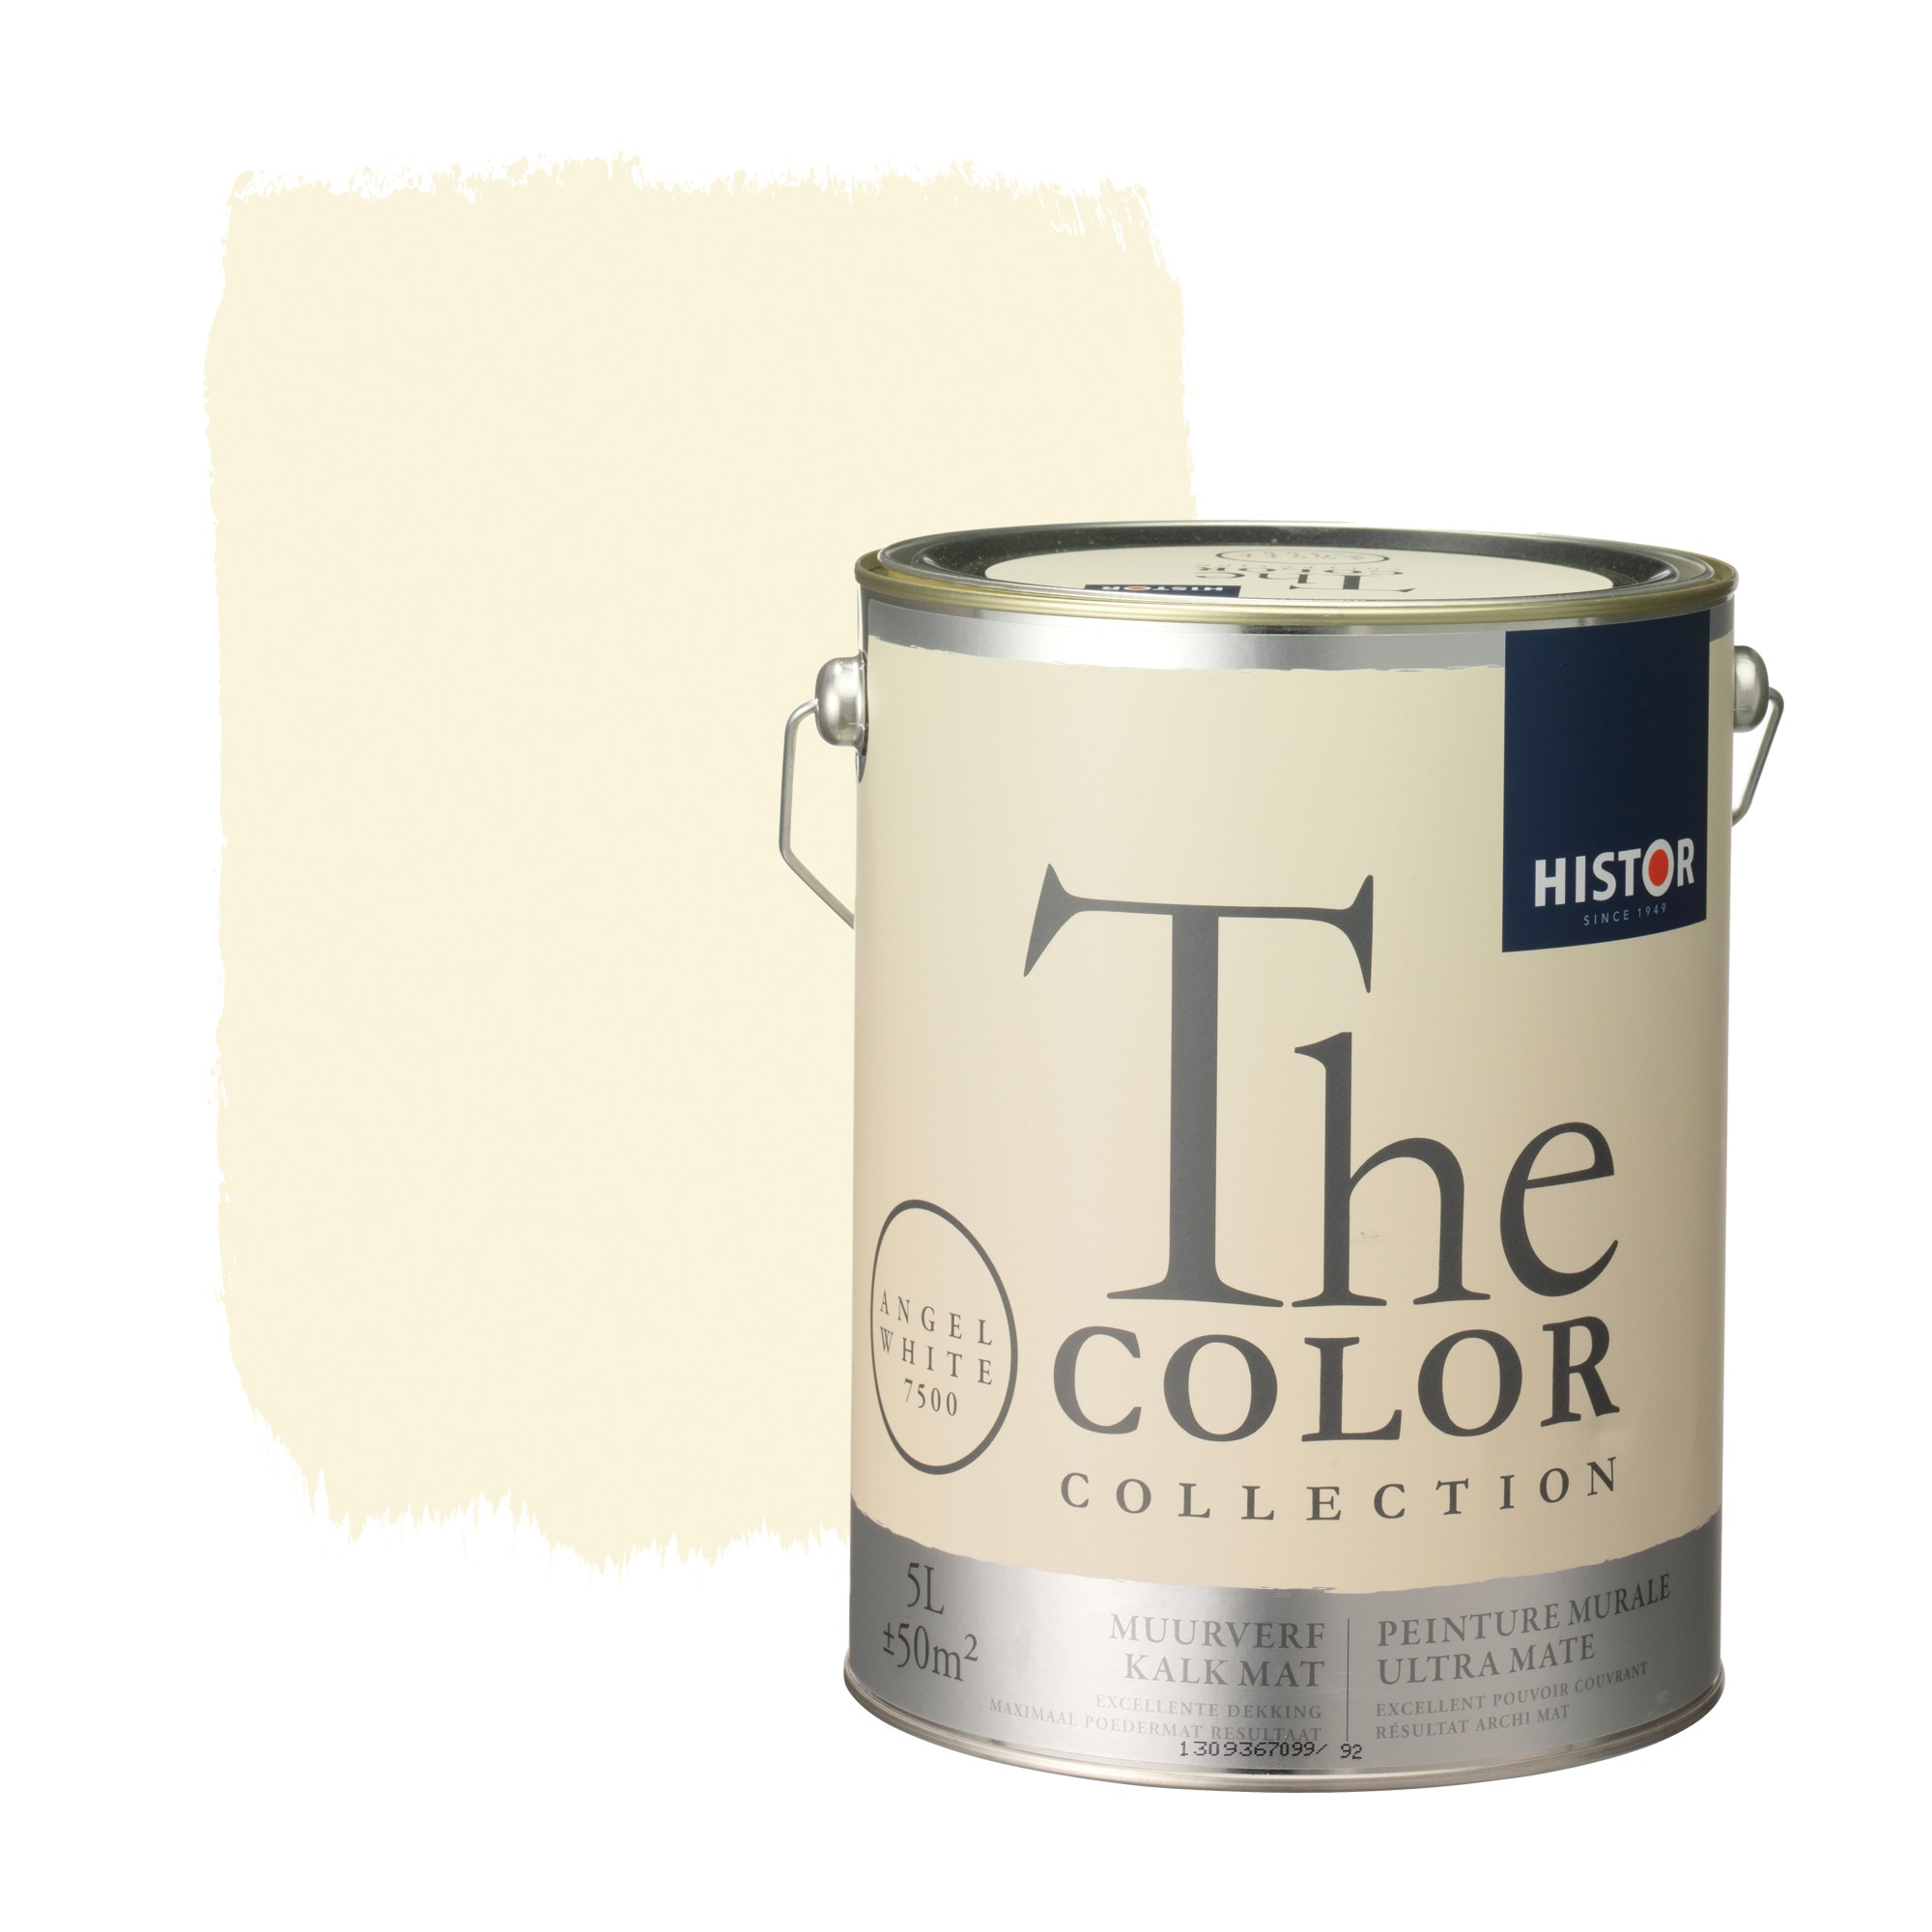 Histor the color collection muurverf kalkmat angel white 7500 5 l